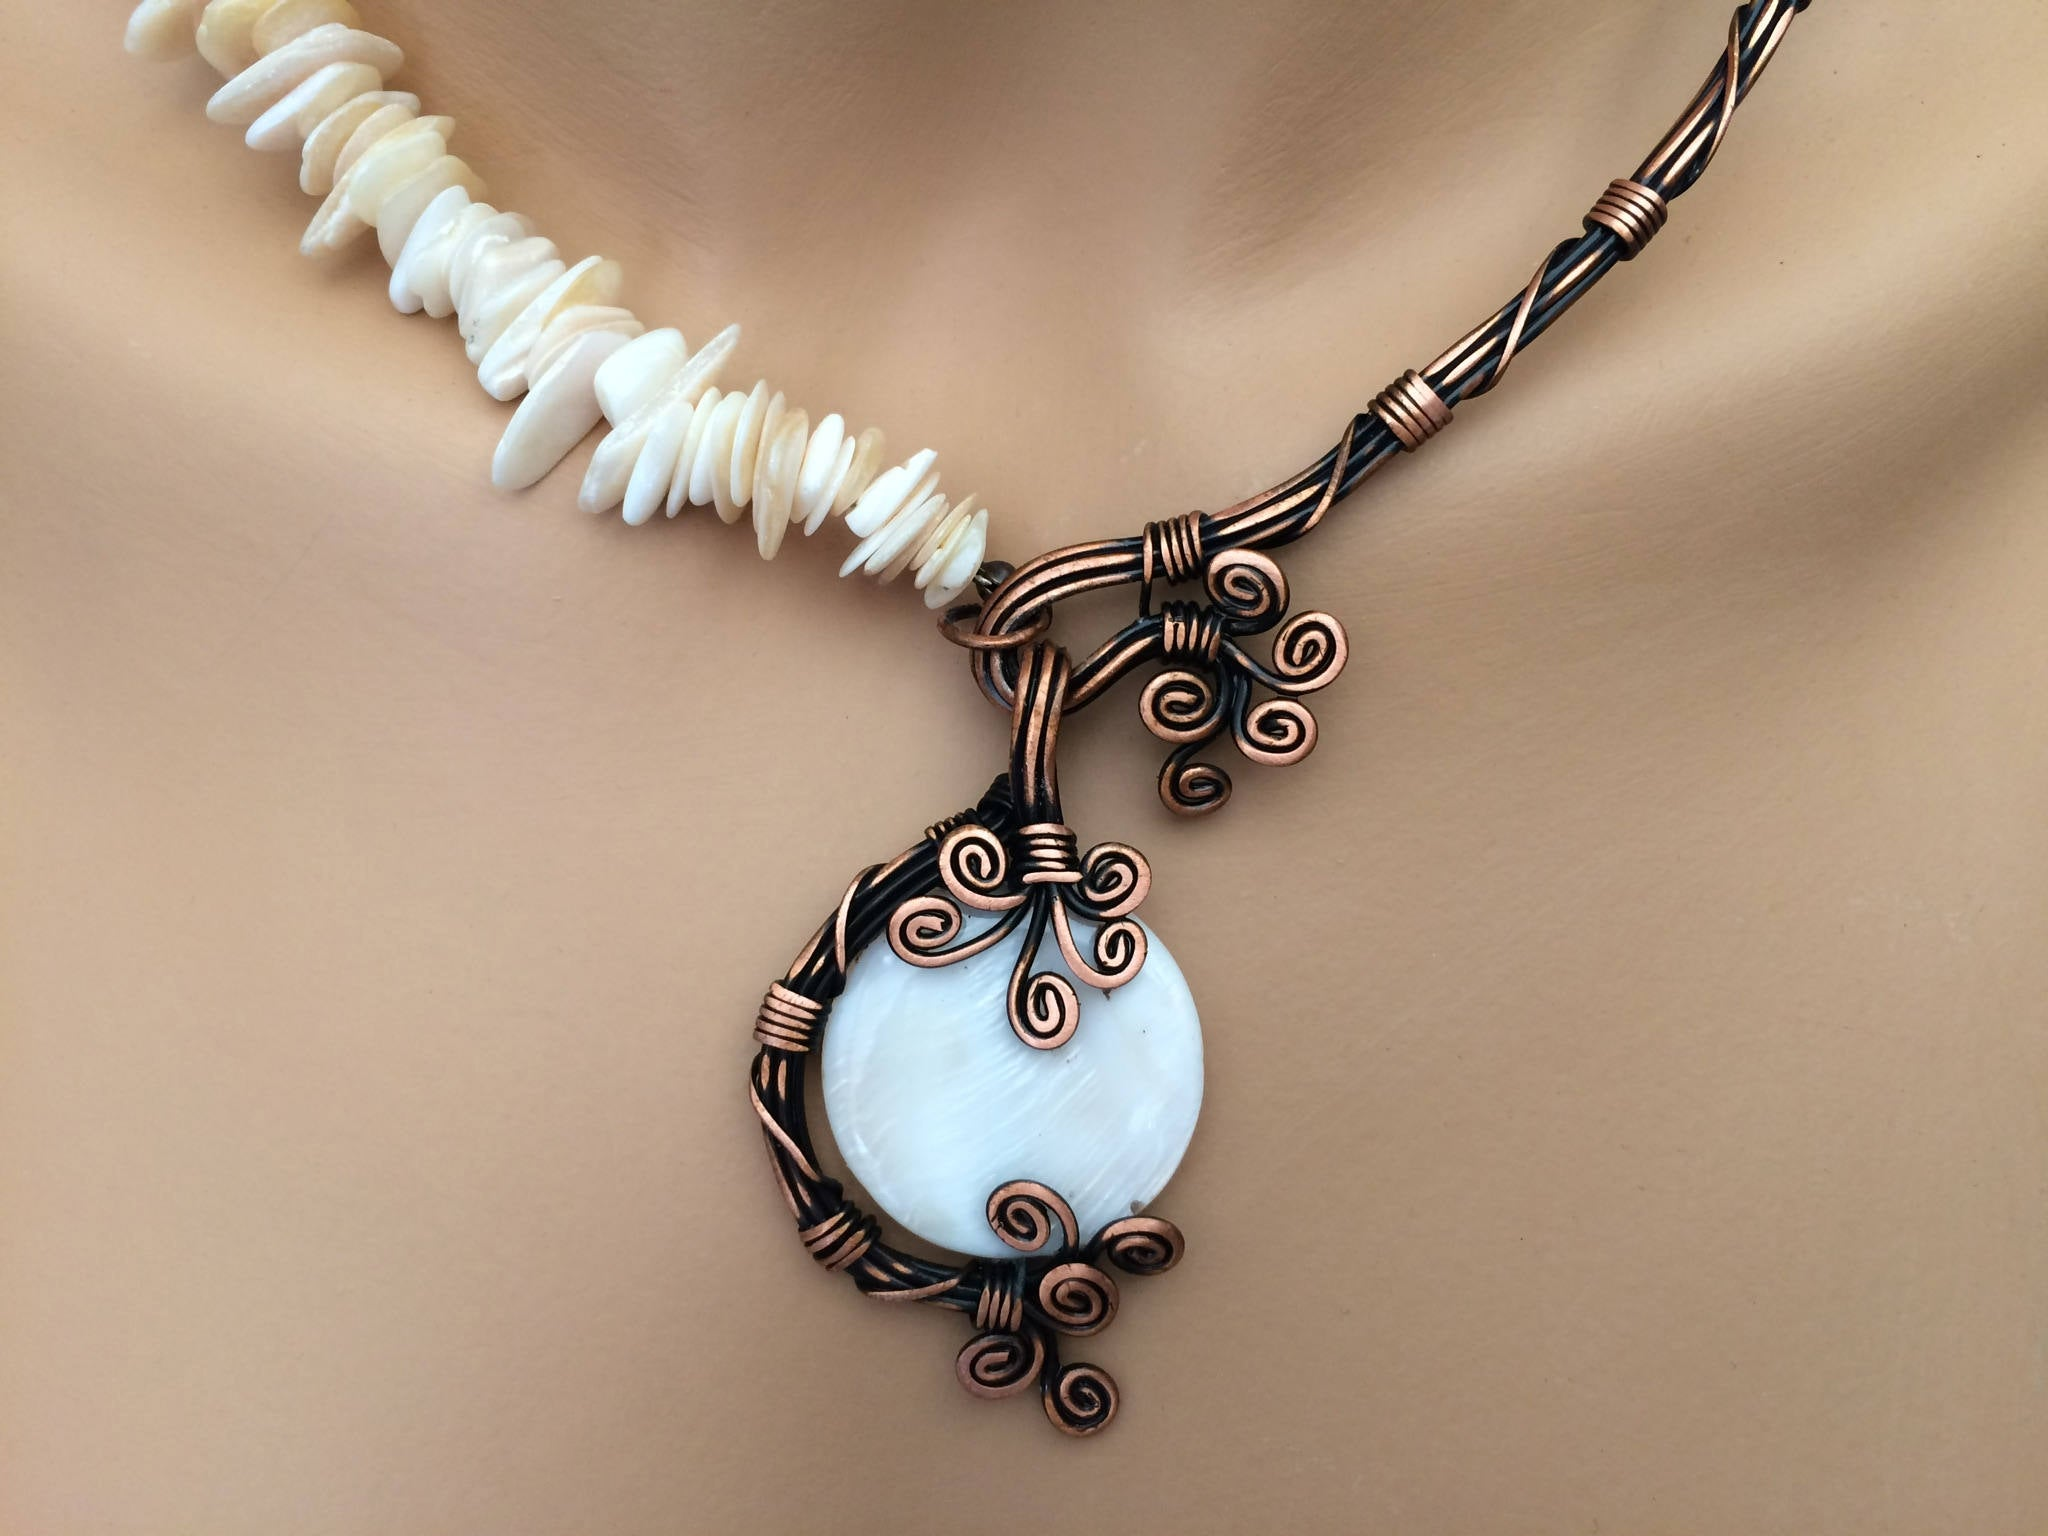 Handmade Mother of Pearl Bridal Statement Necklace - Babazen